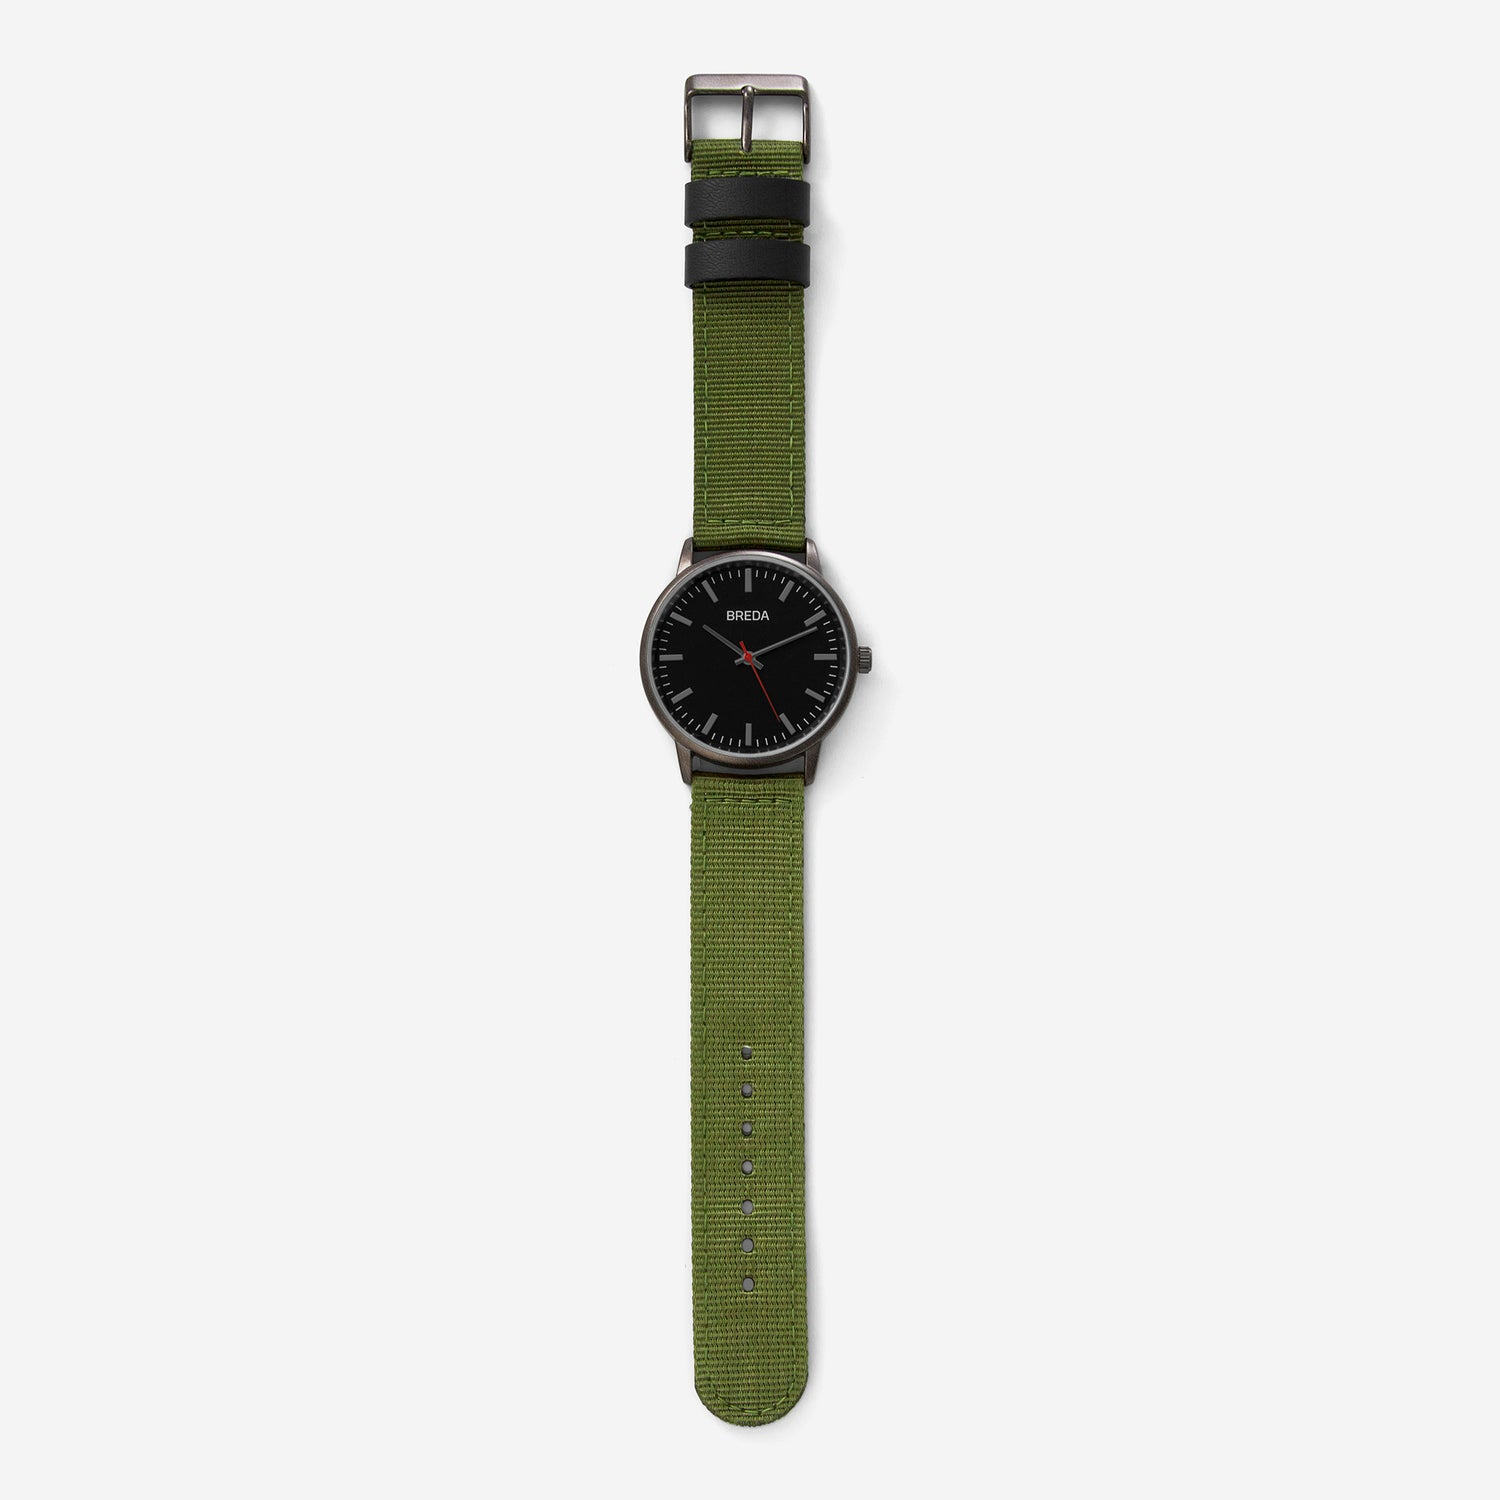 breda-valor-1707b-gunmetal-green-watch-long